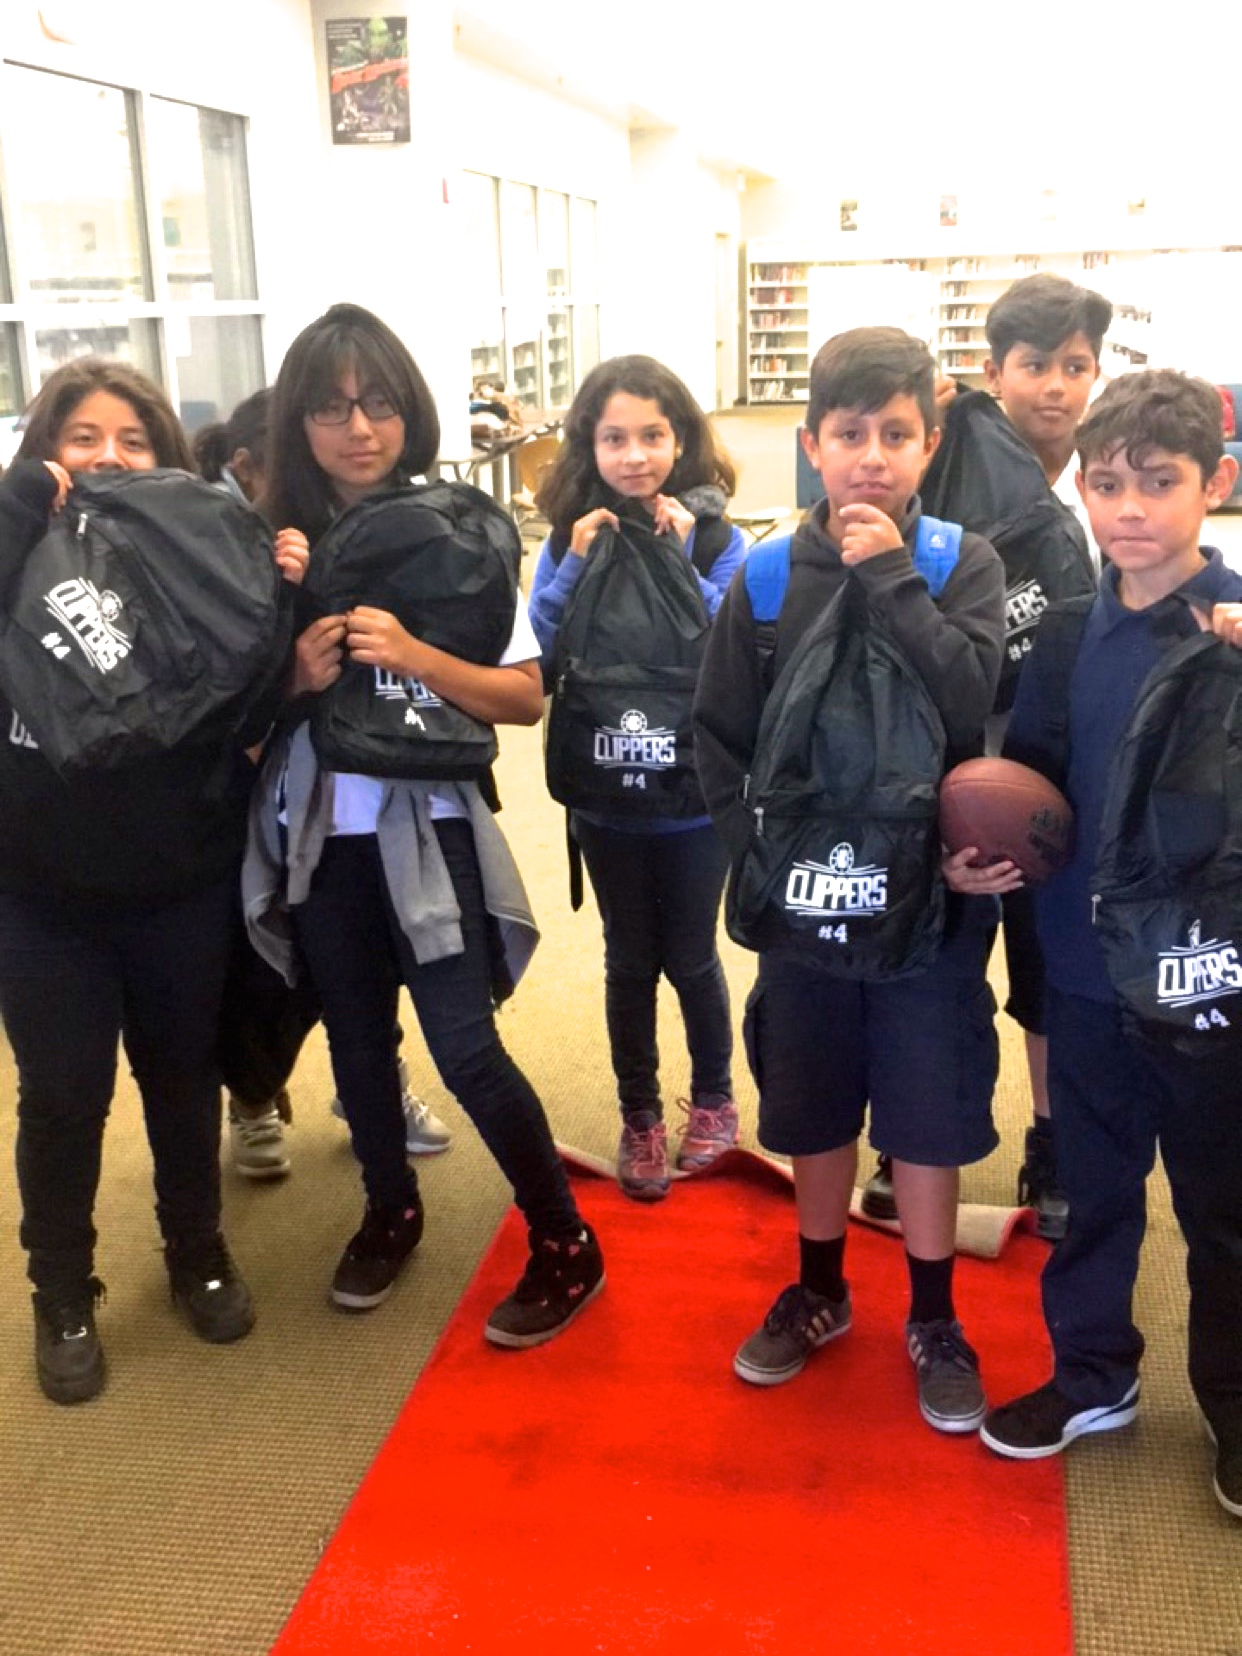 Edison Middle School students with their new LA Clippers backpacks!